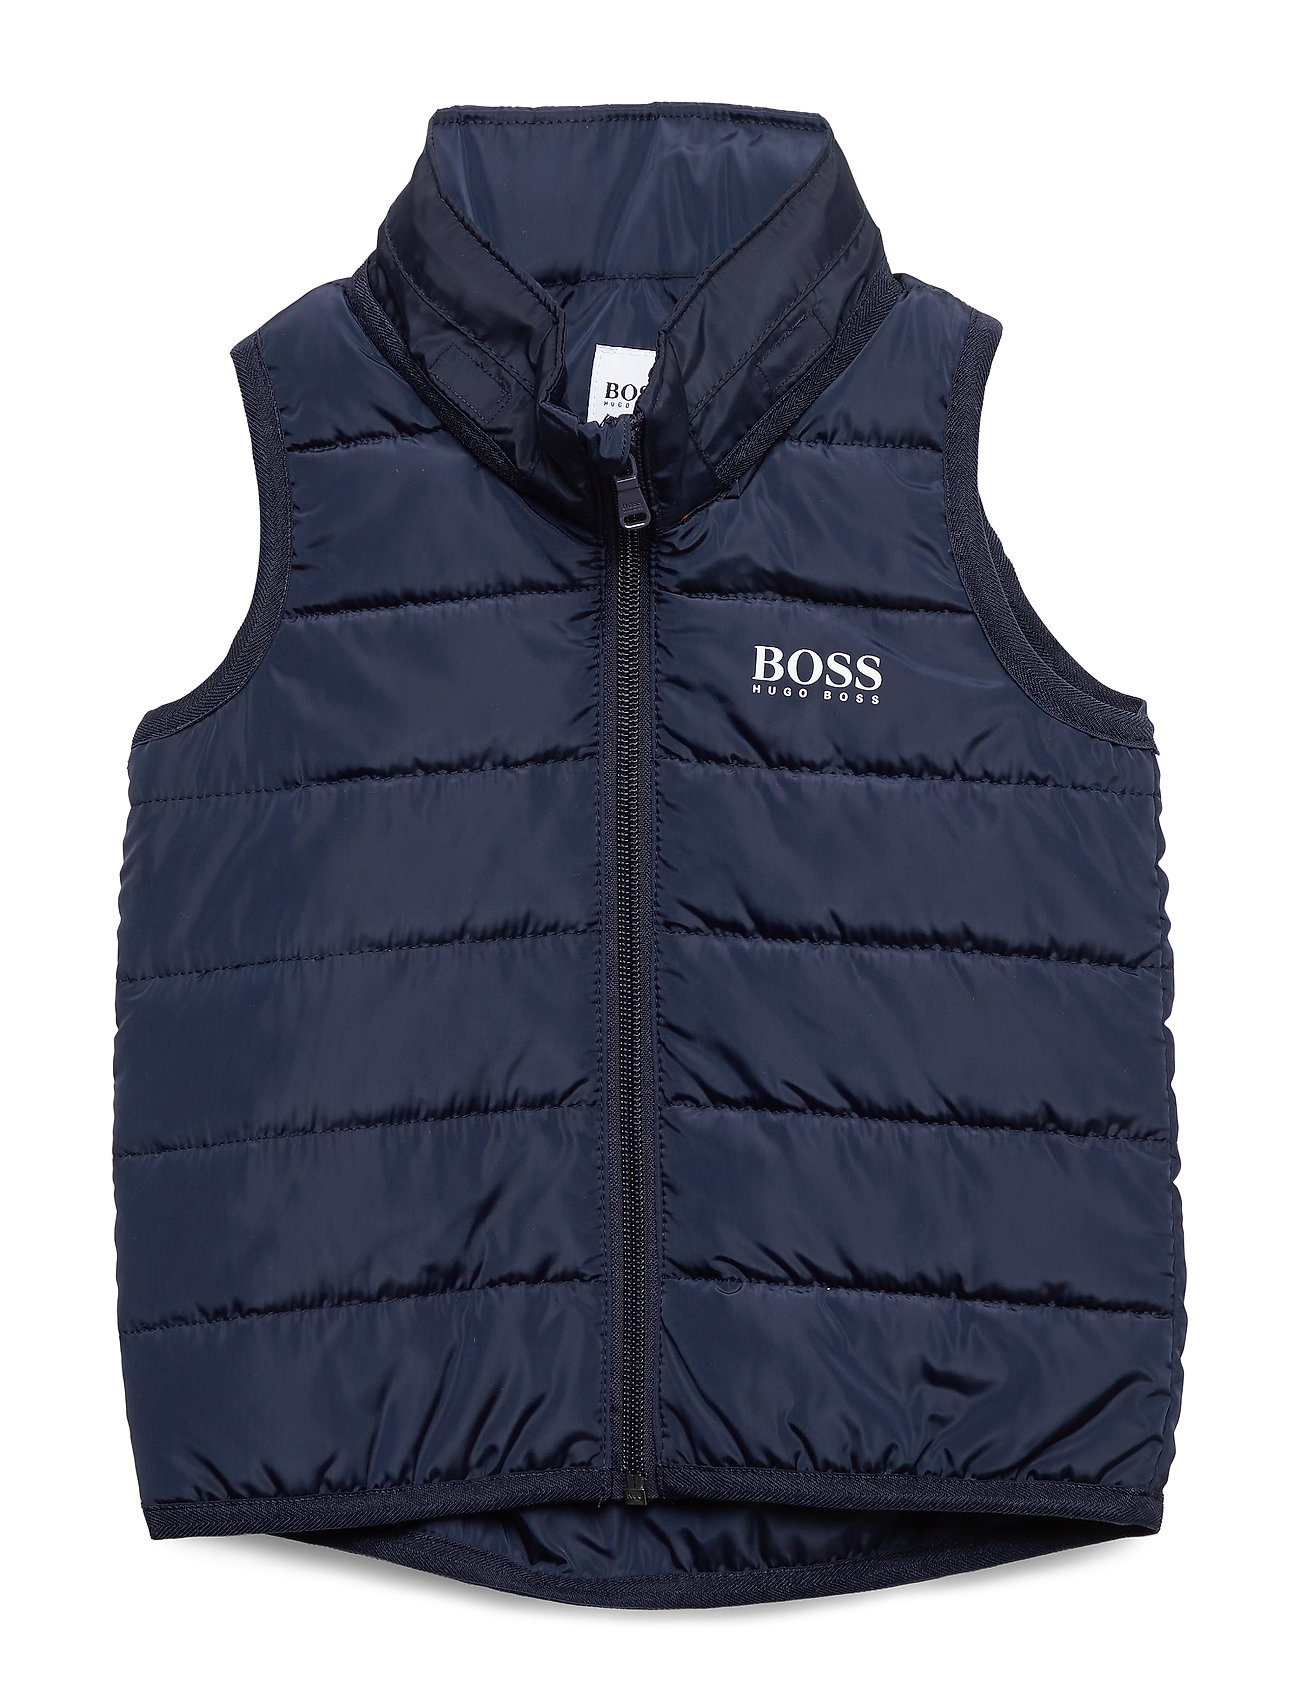 Image of Puffer Jacket Sleeveless Foret Vest Blå BOSS (3312099723)